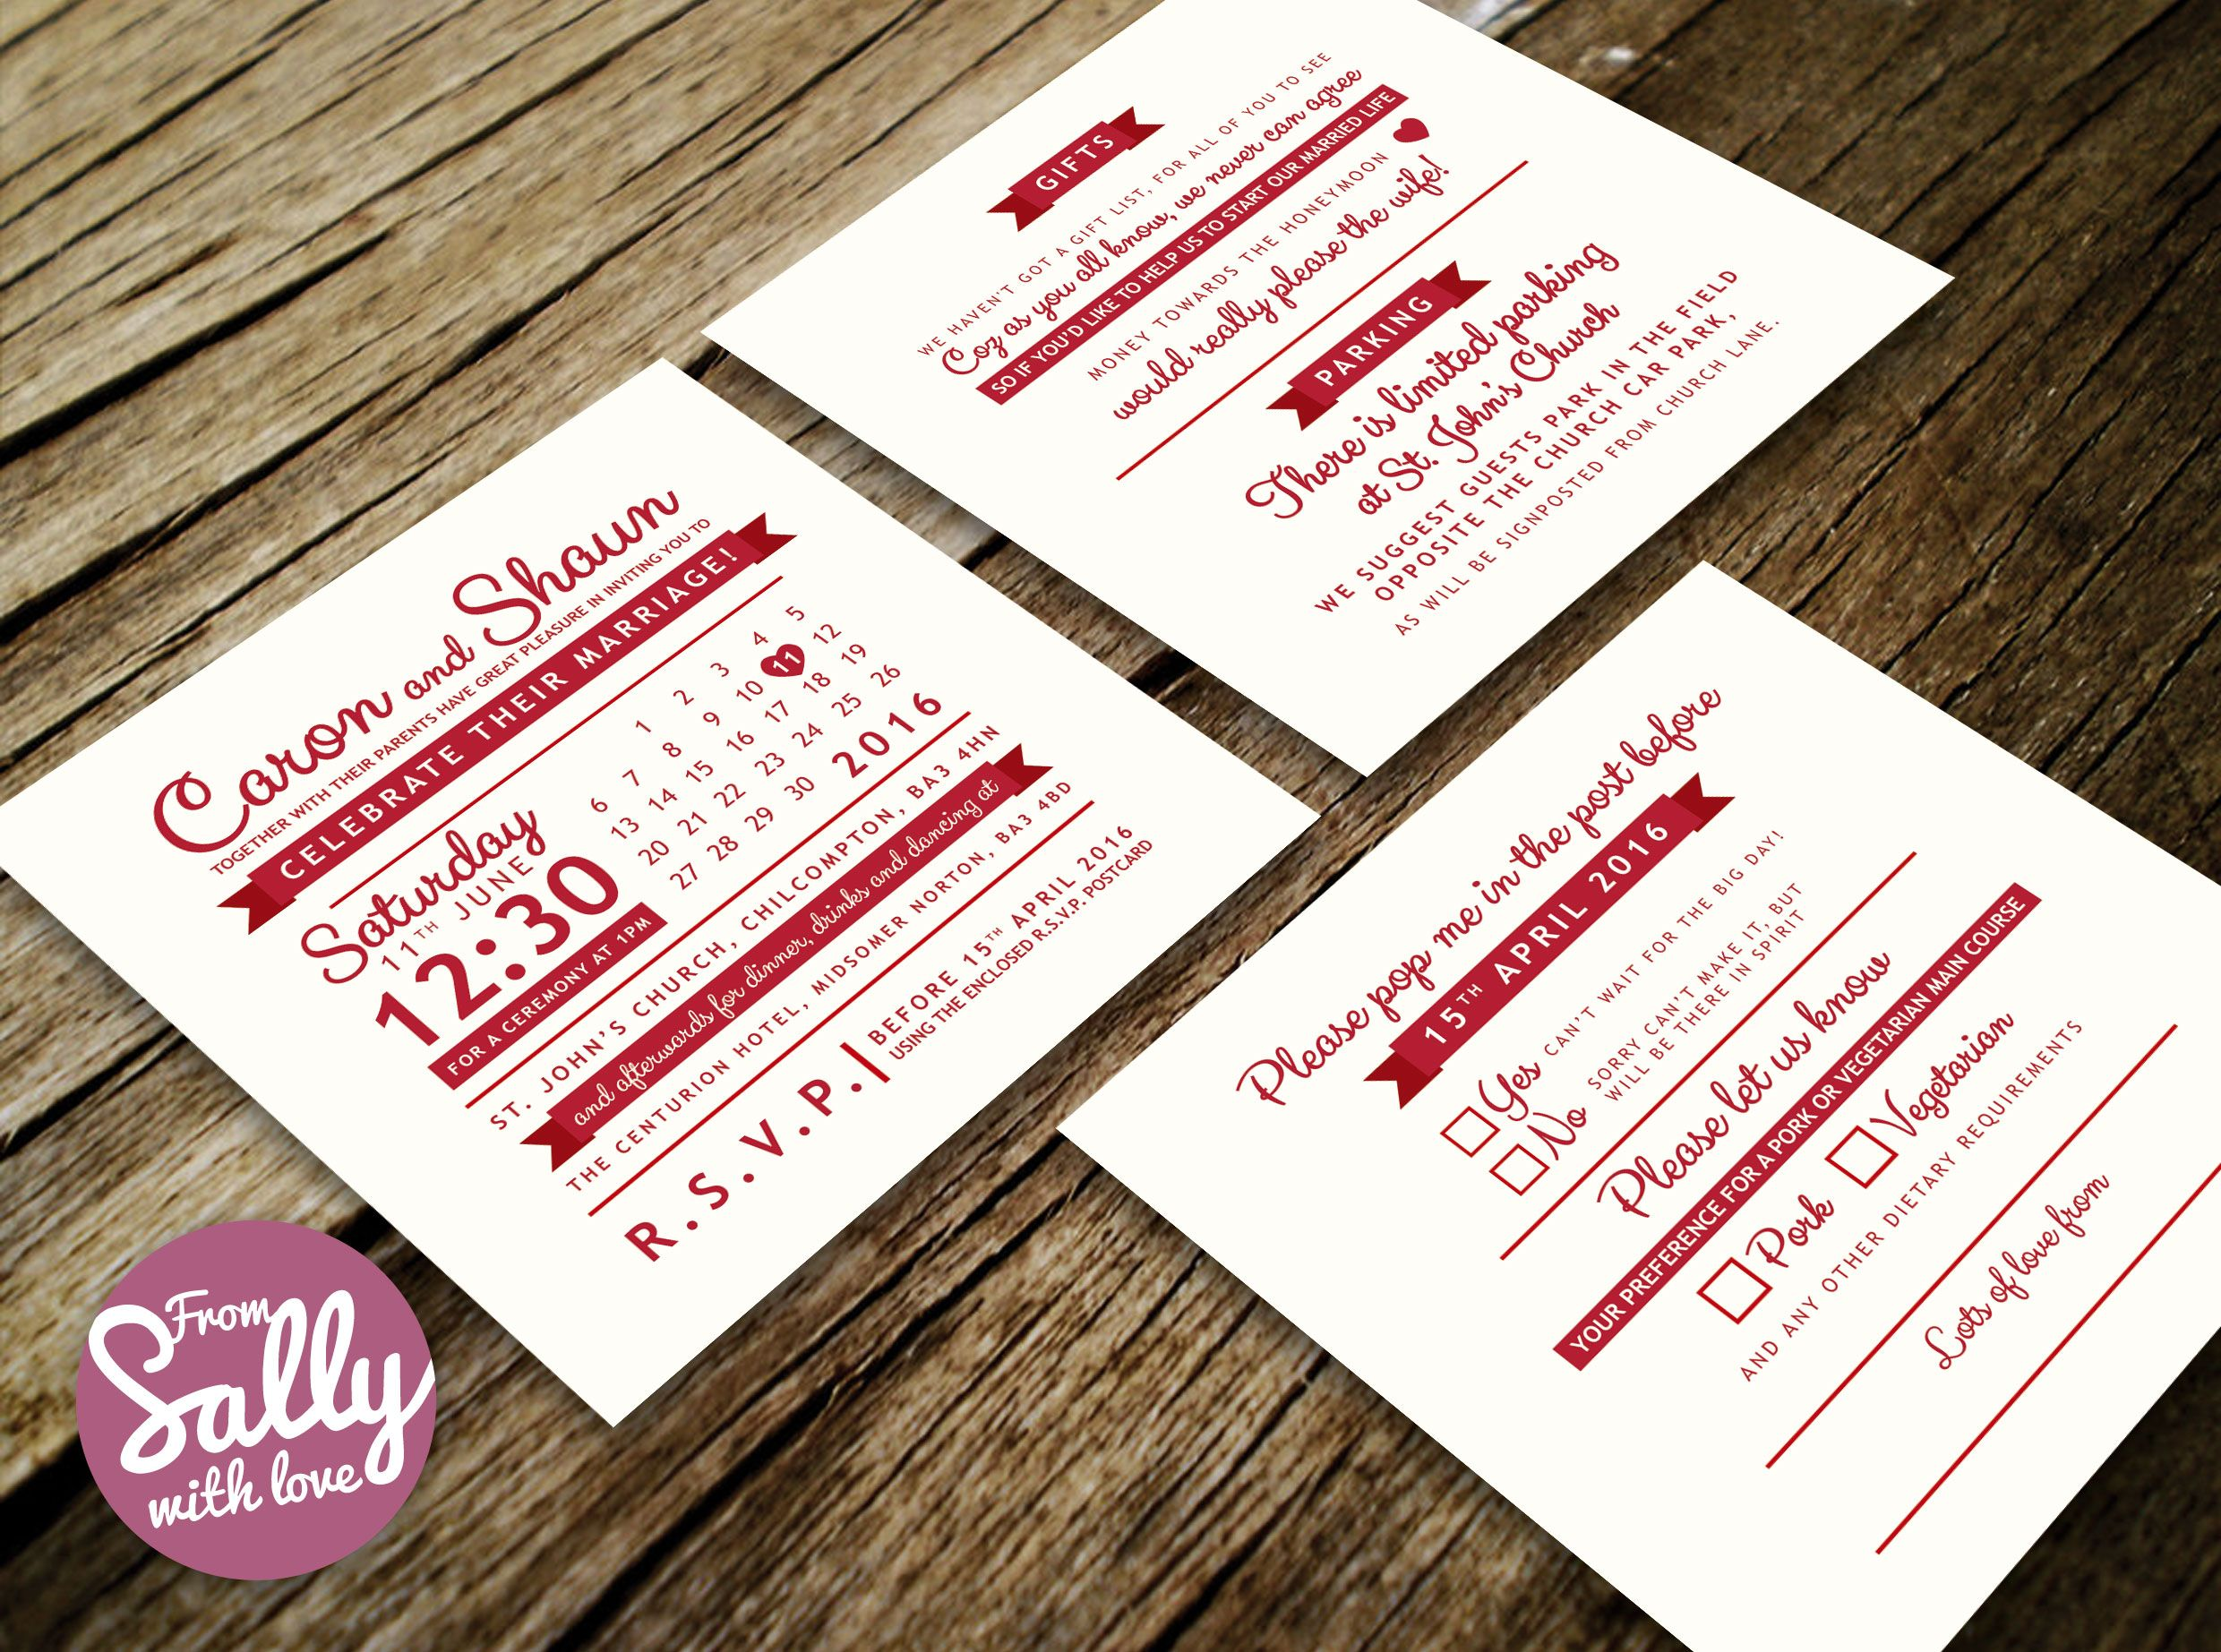 Typgraphic wedding invitations for Caron and Shaun in red ...